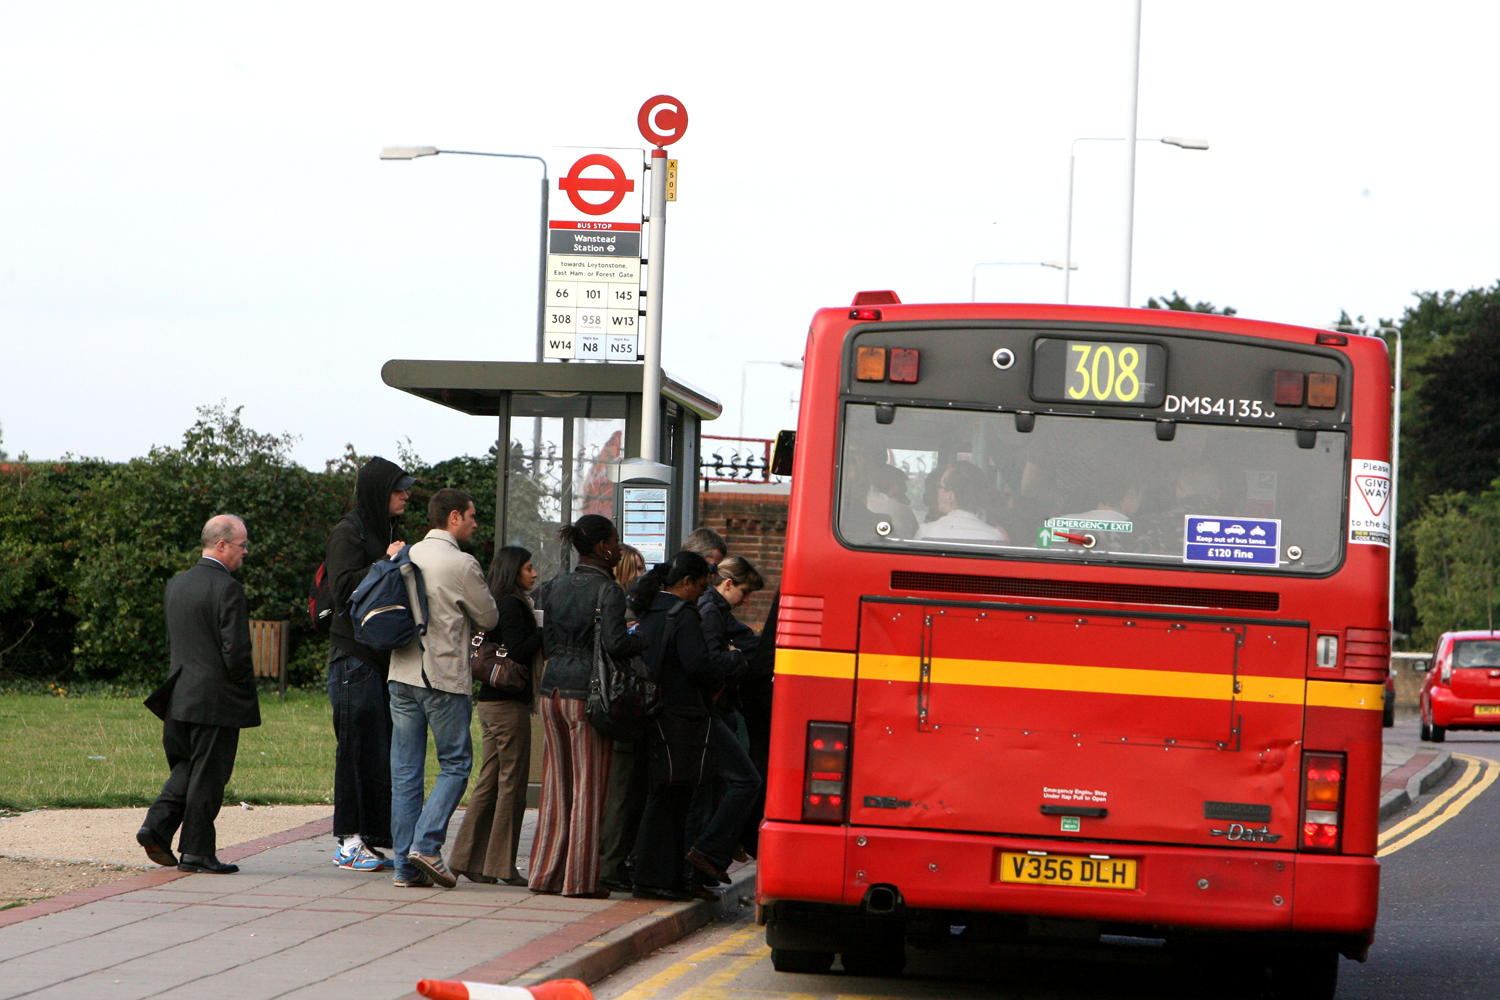 The wait at bus stops across Waltham Forest and Redbridge will be longer than usual today